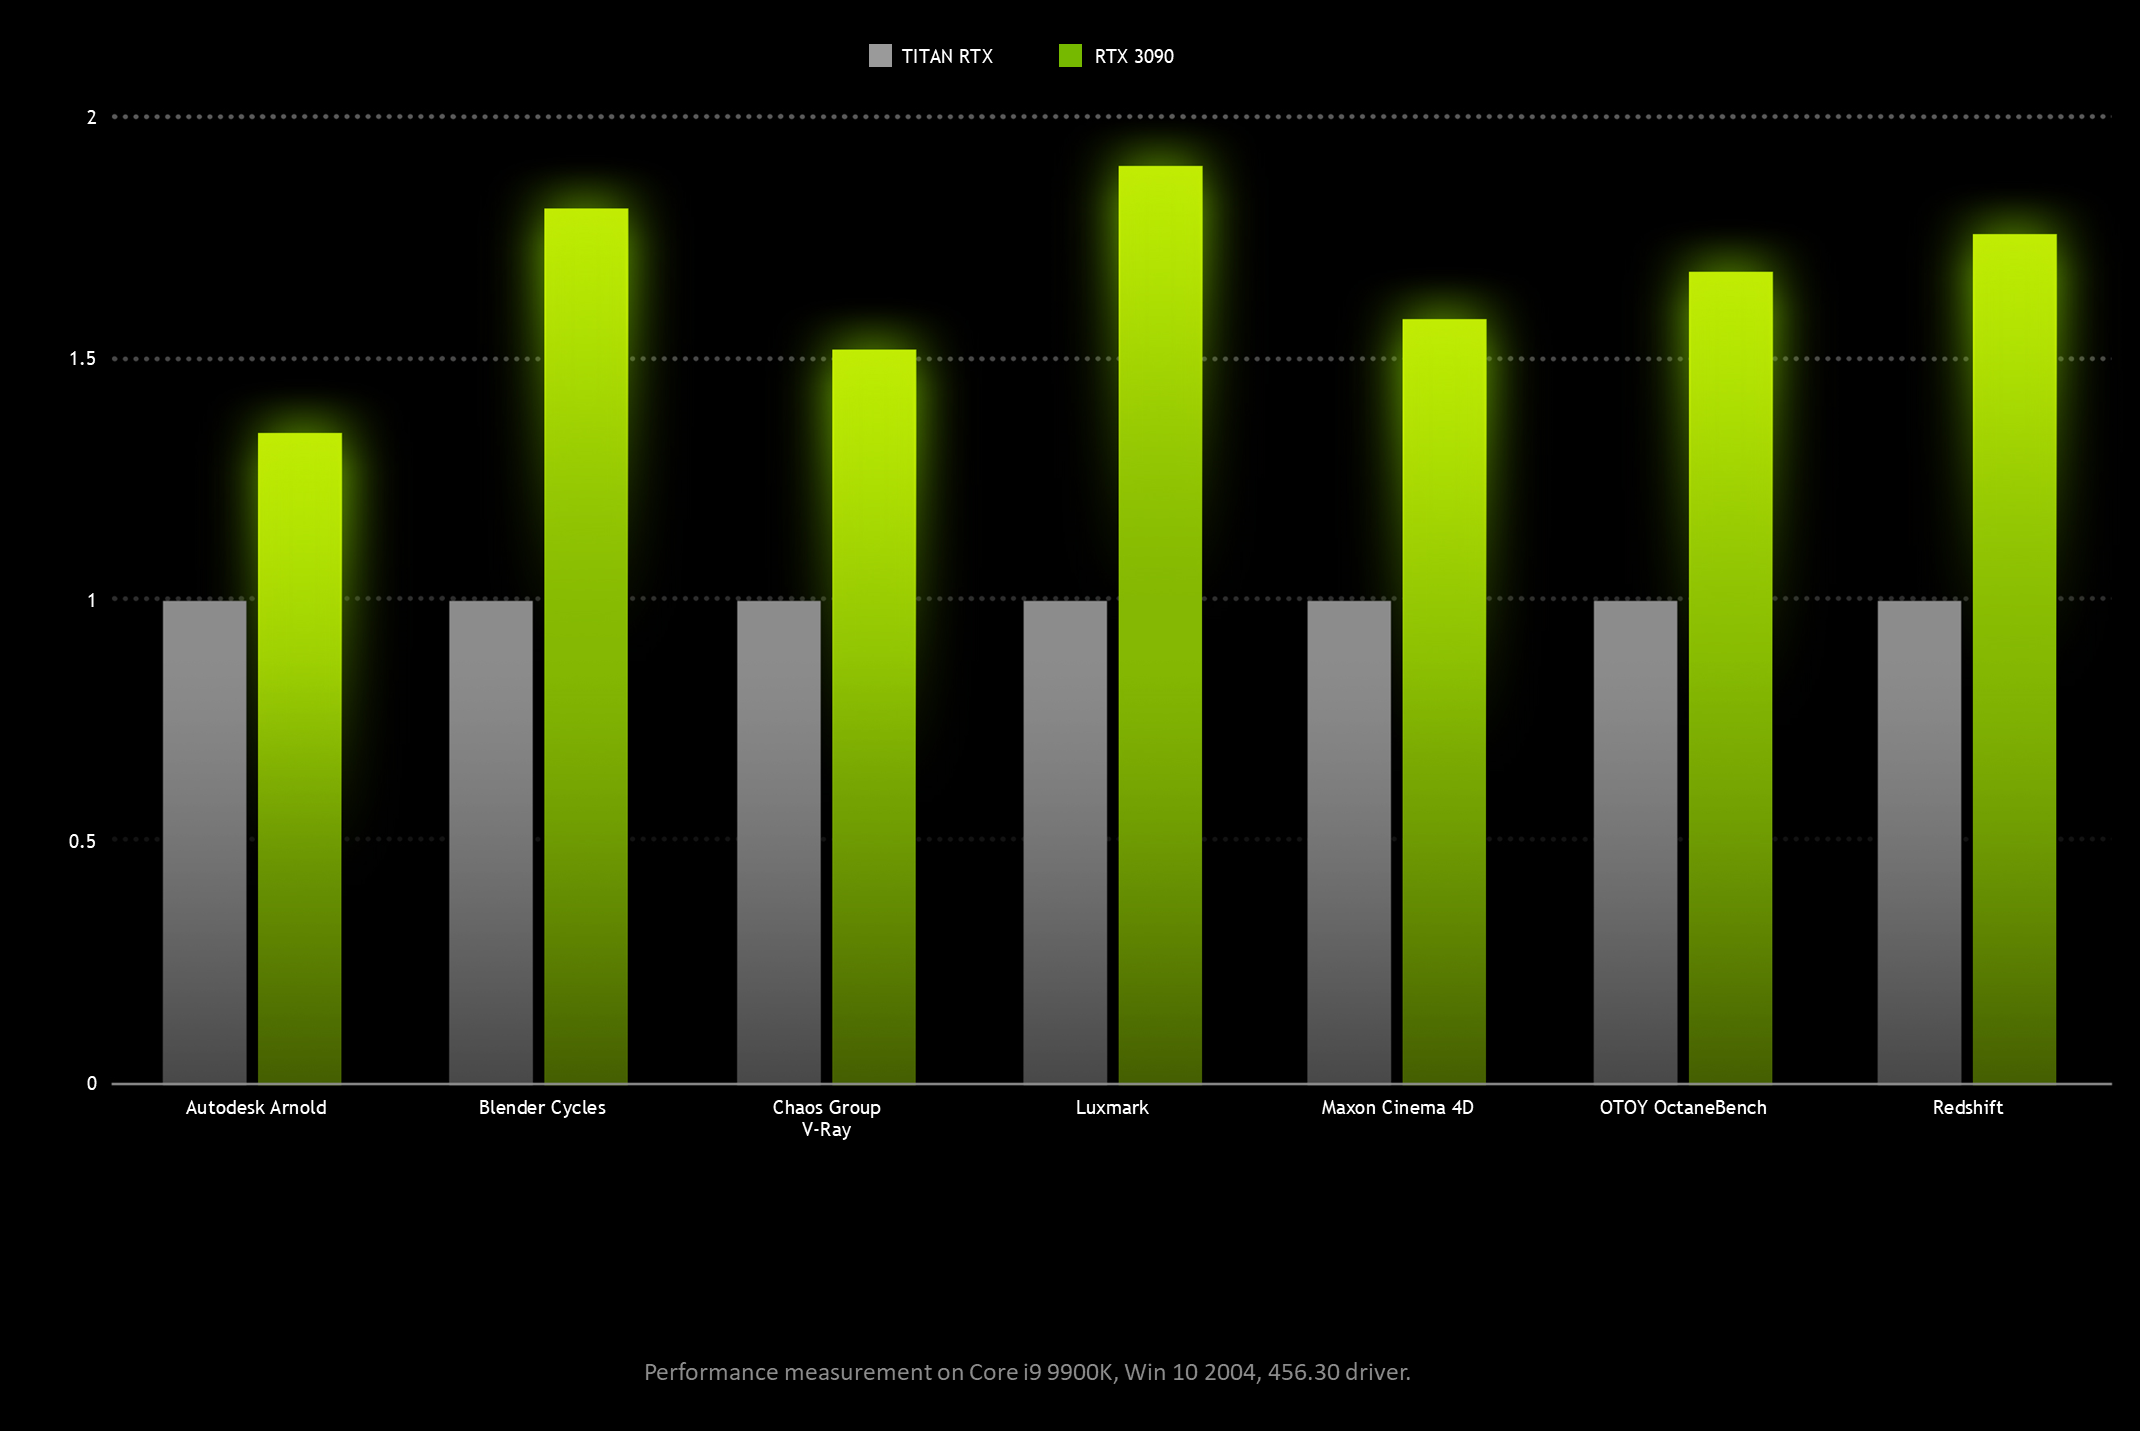 Media asset in full size related to 3dfxzone.it news item entitled as follows: GeForce RTX 3090 vs GeForce RTX 3080 vs TITAN RTX secondo NVIDIA | Image Name: news31146_NVIDIA-RTX-3090_1.png